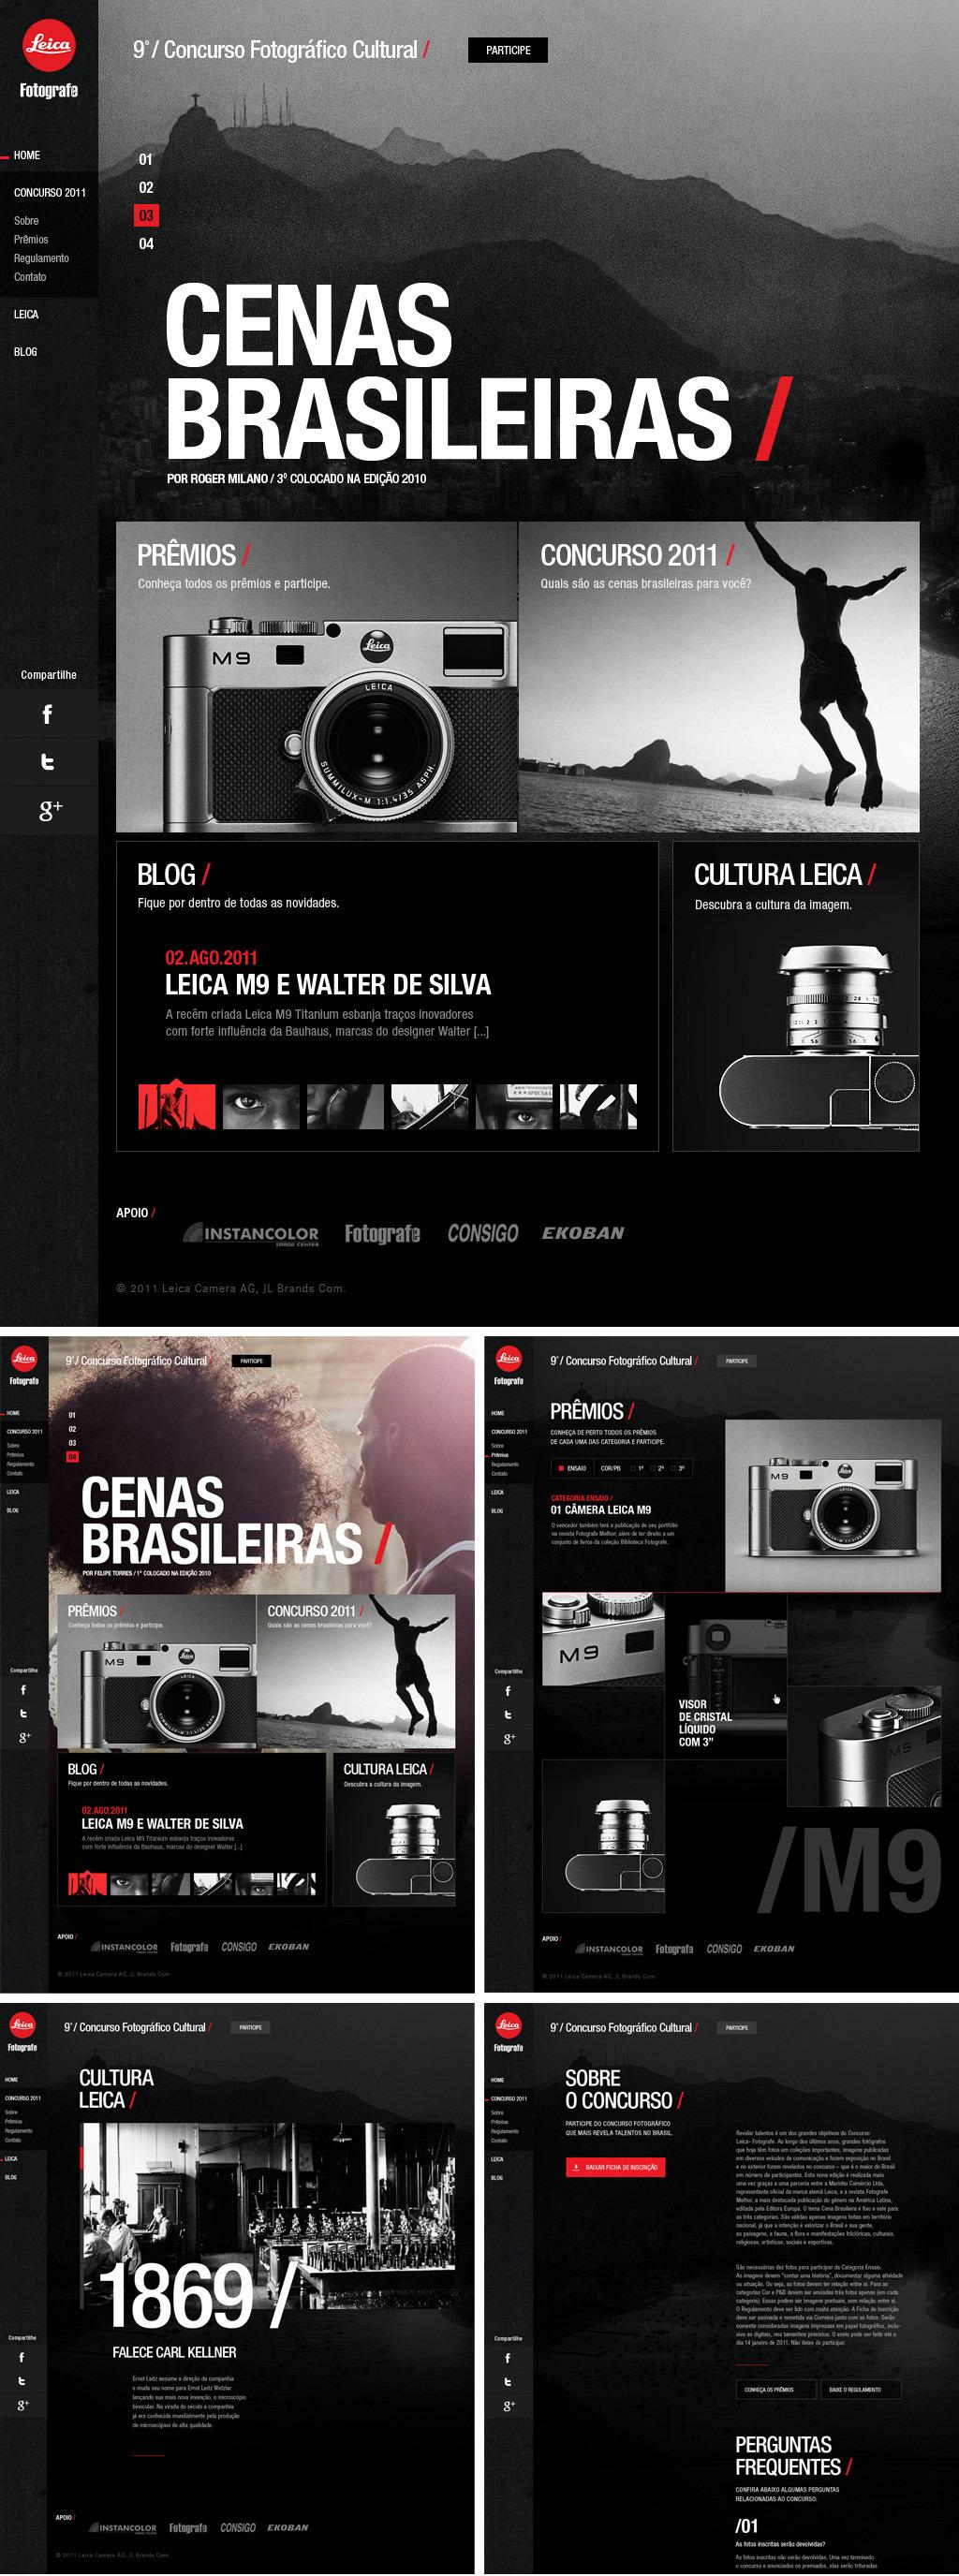 Leica - Photo Contest 2011 - Augusto Paiva / Interactive Whatever